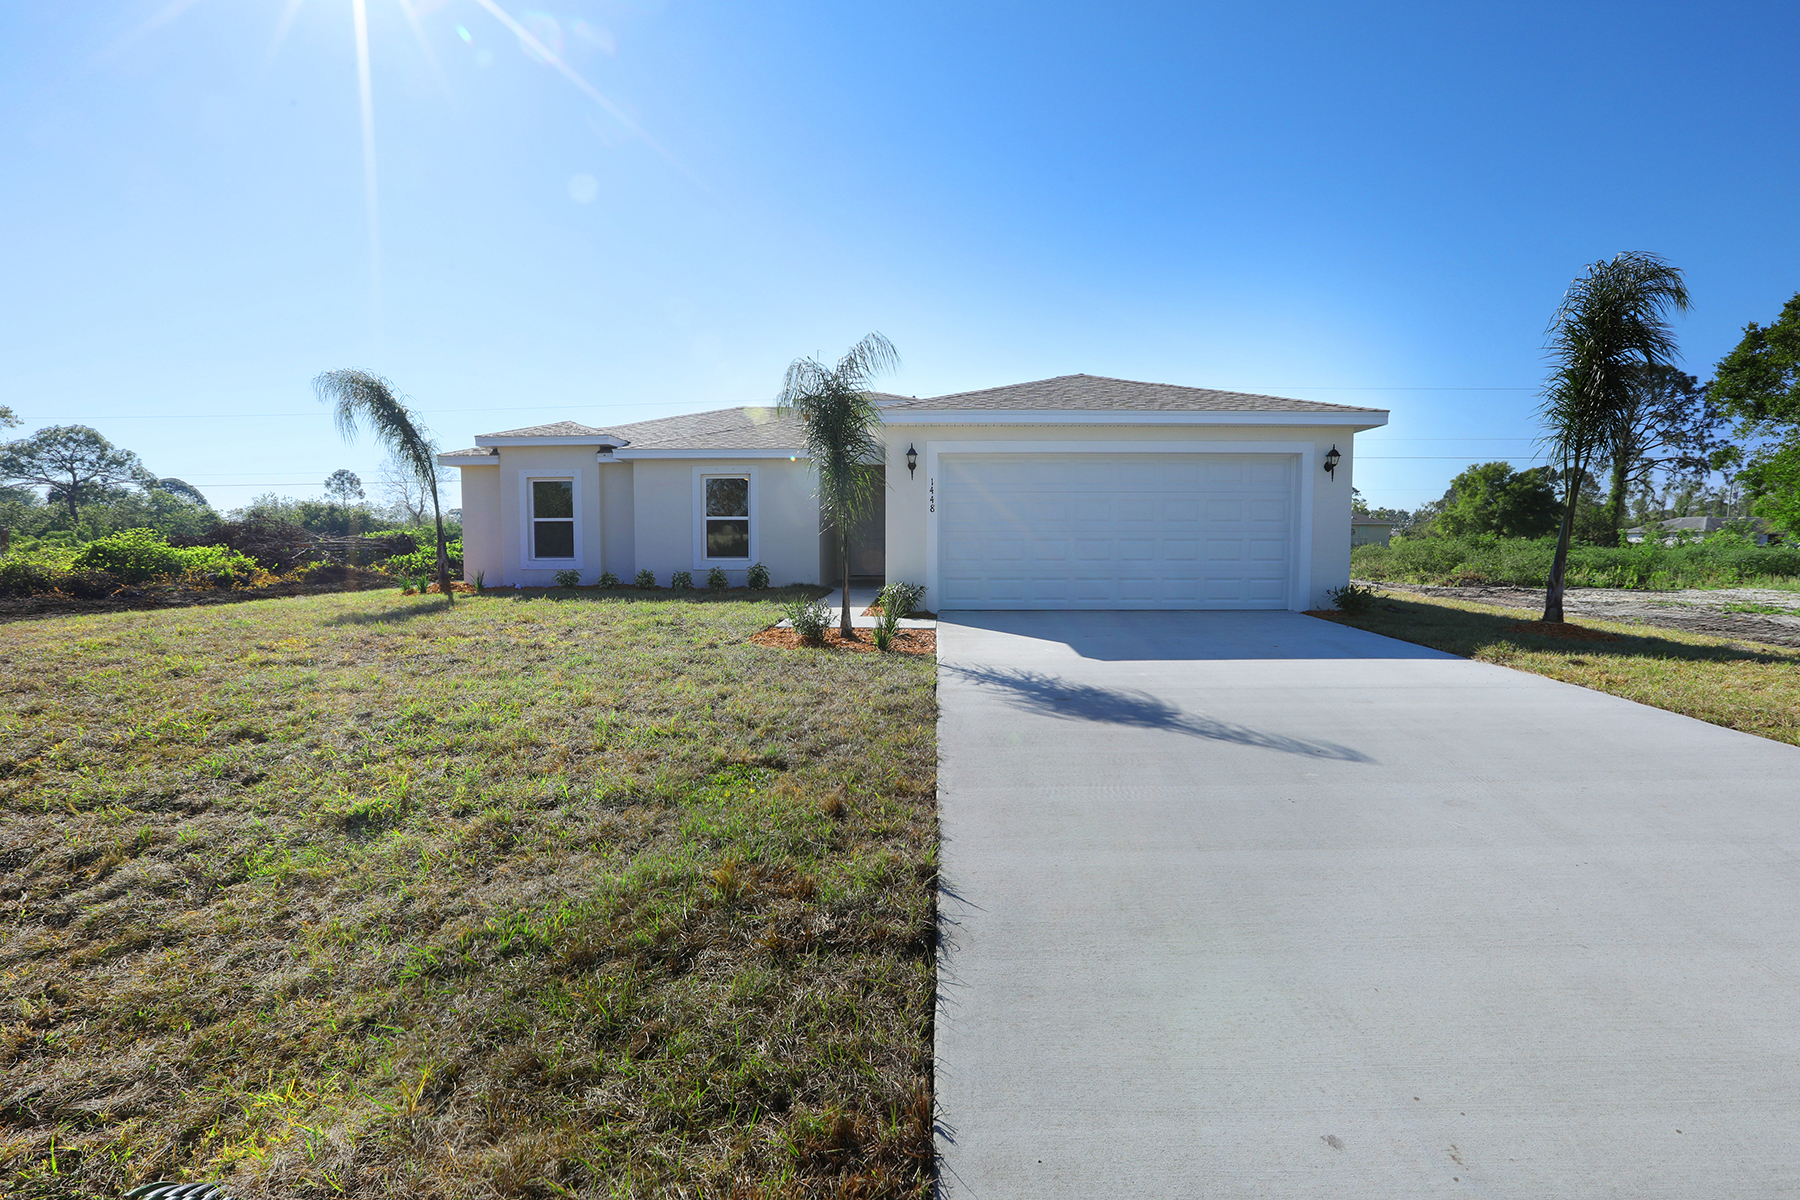 Single Family Homes for Active at PALM BAY 1649 Talbott St Se Palm Bay, Florida 32909 United States